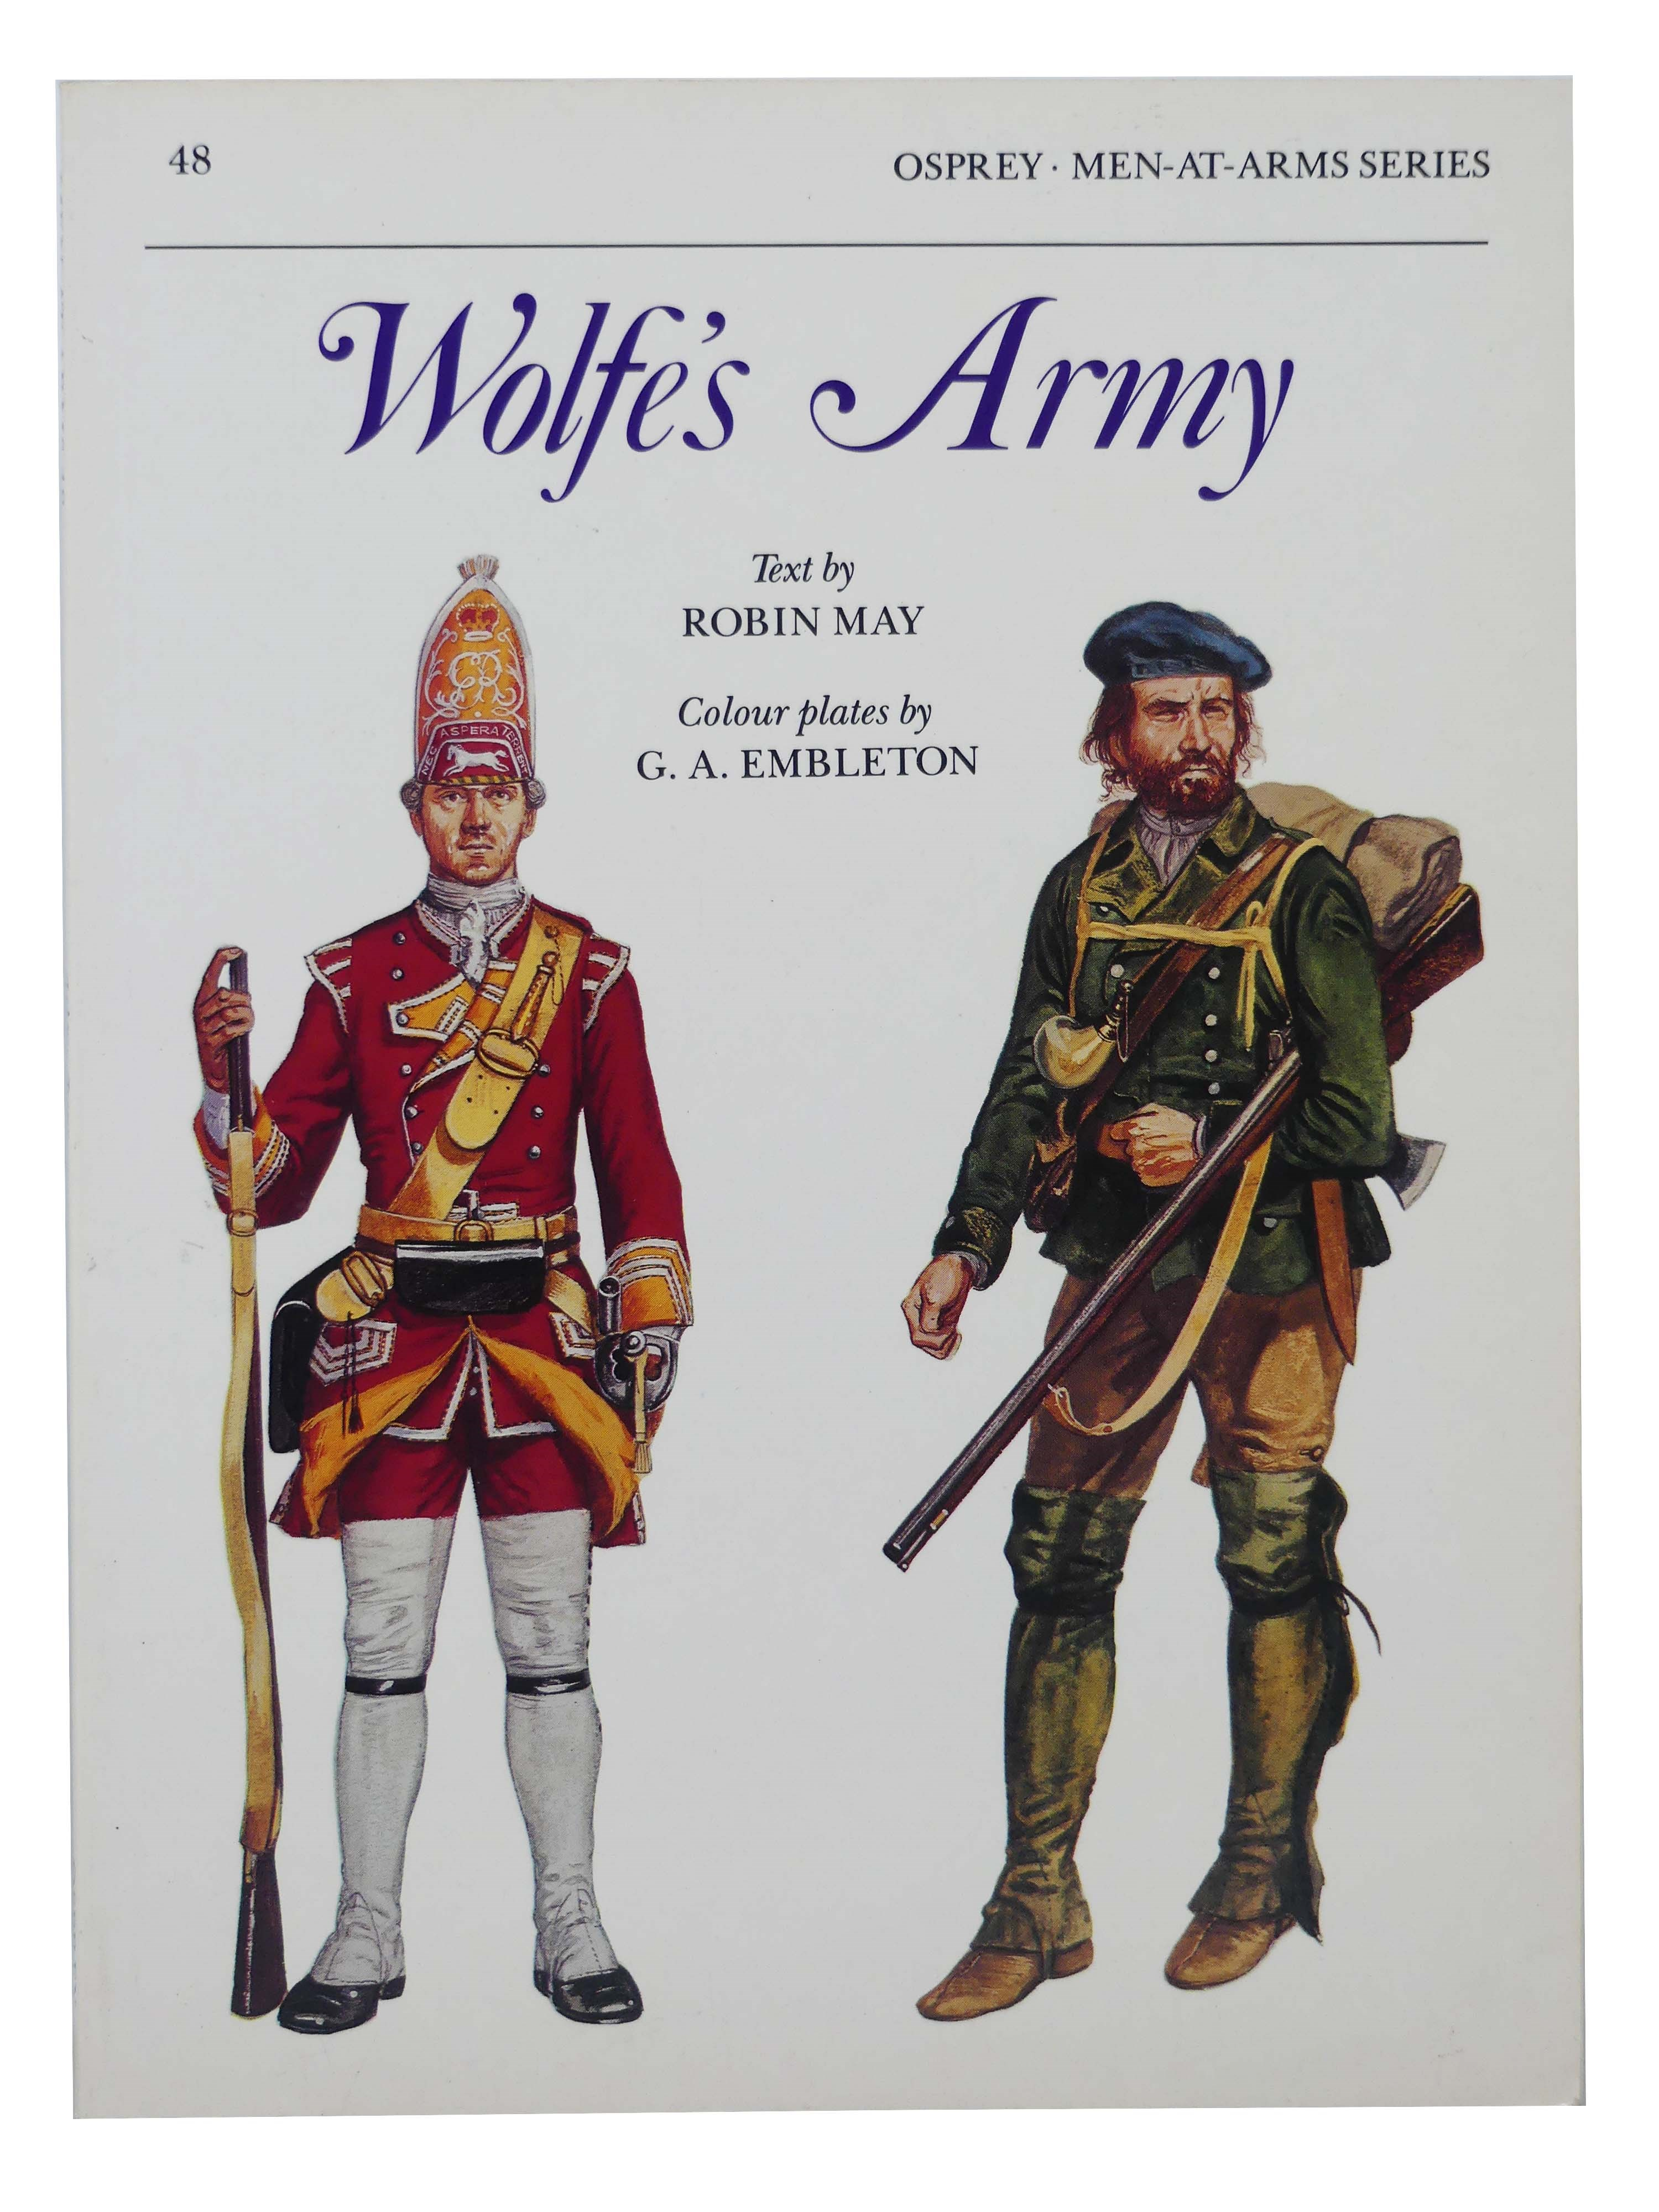 Image for Wolfe's Army (Opsrey Men-At-Arms Series, No. 48)